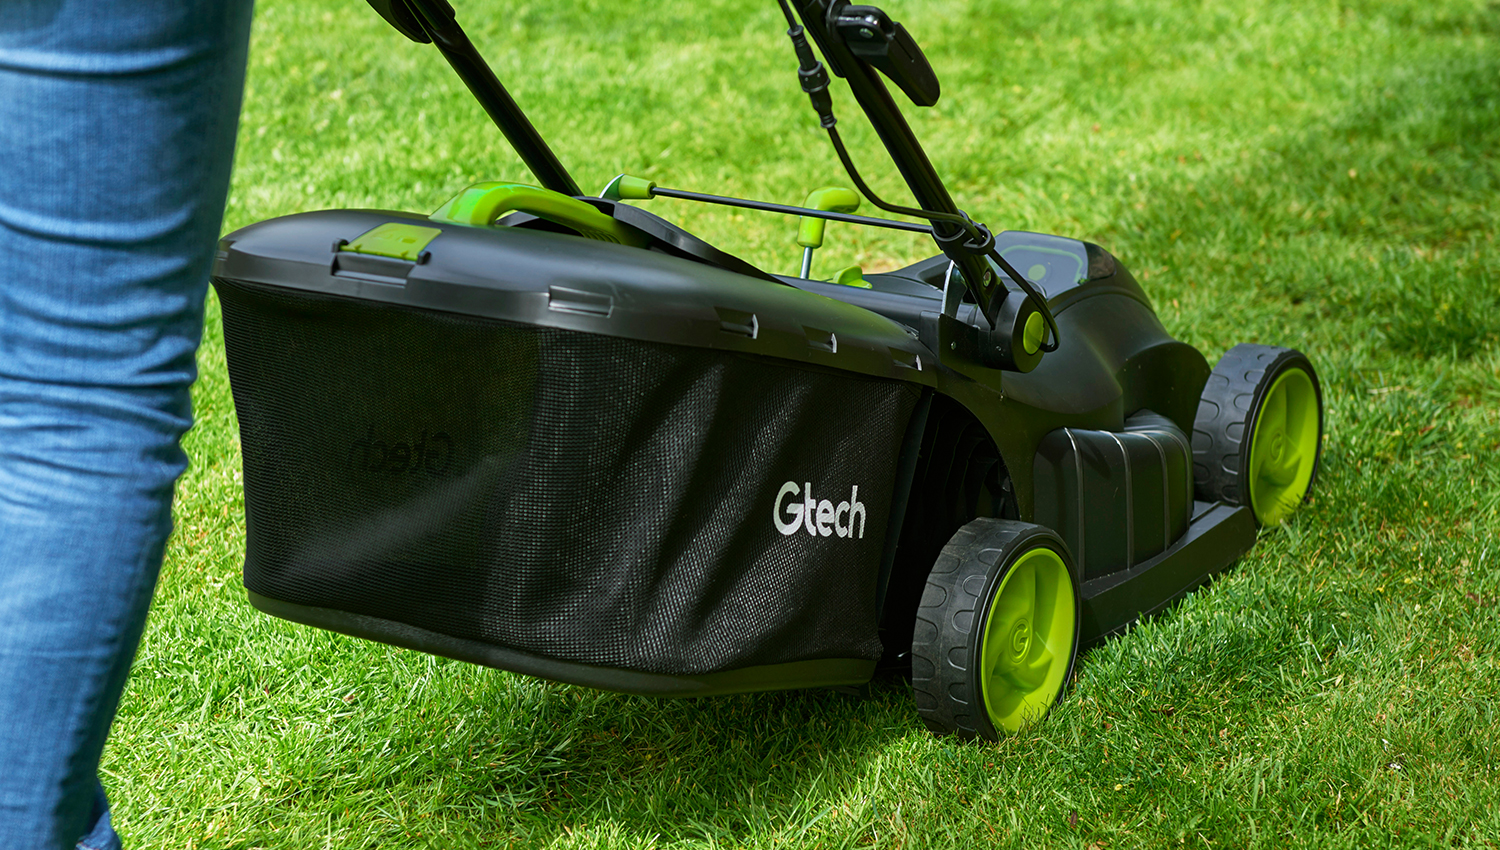 Gtech Cordless Lawnmower 2 0 | Battery Powered Lawnmower | Gtech